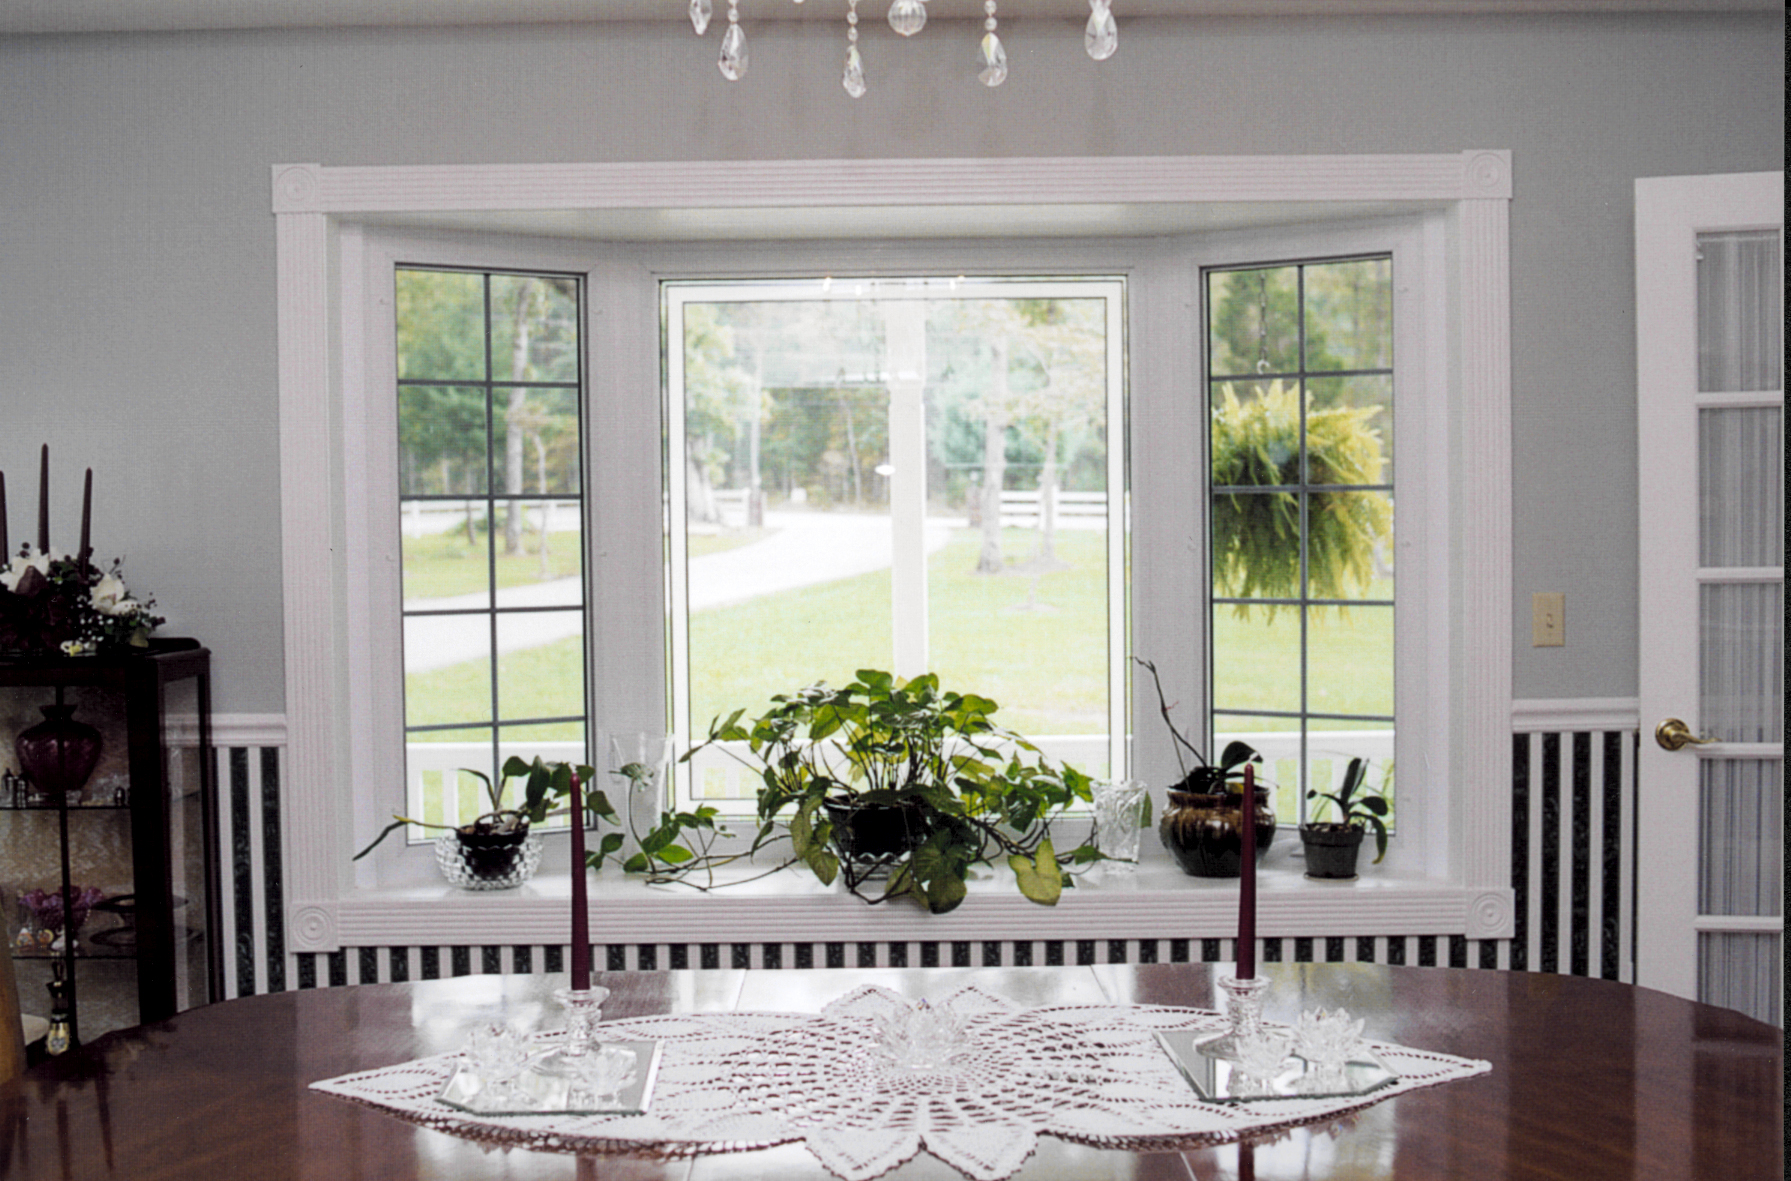 Bay Windows With Vivid Ornamental Plants And Beautiful Vases Large Dining Table Luxurious Crystal Pendant Lamp